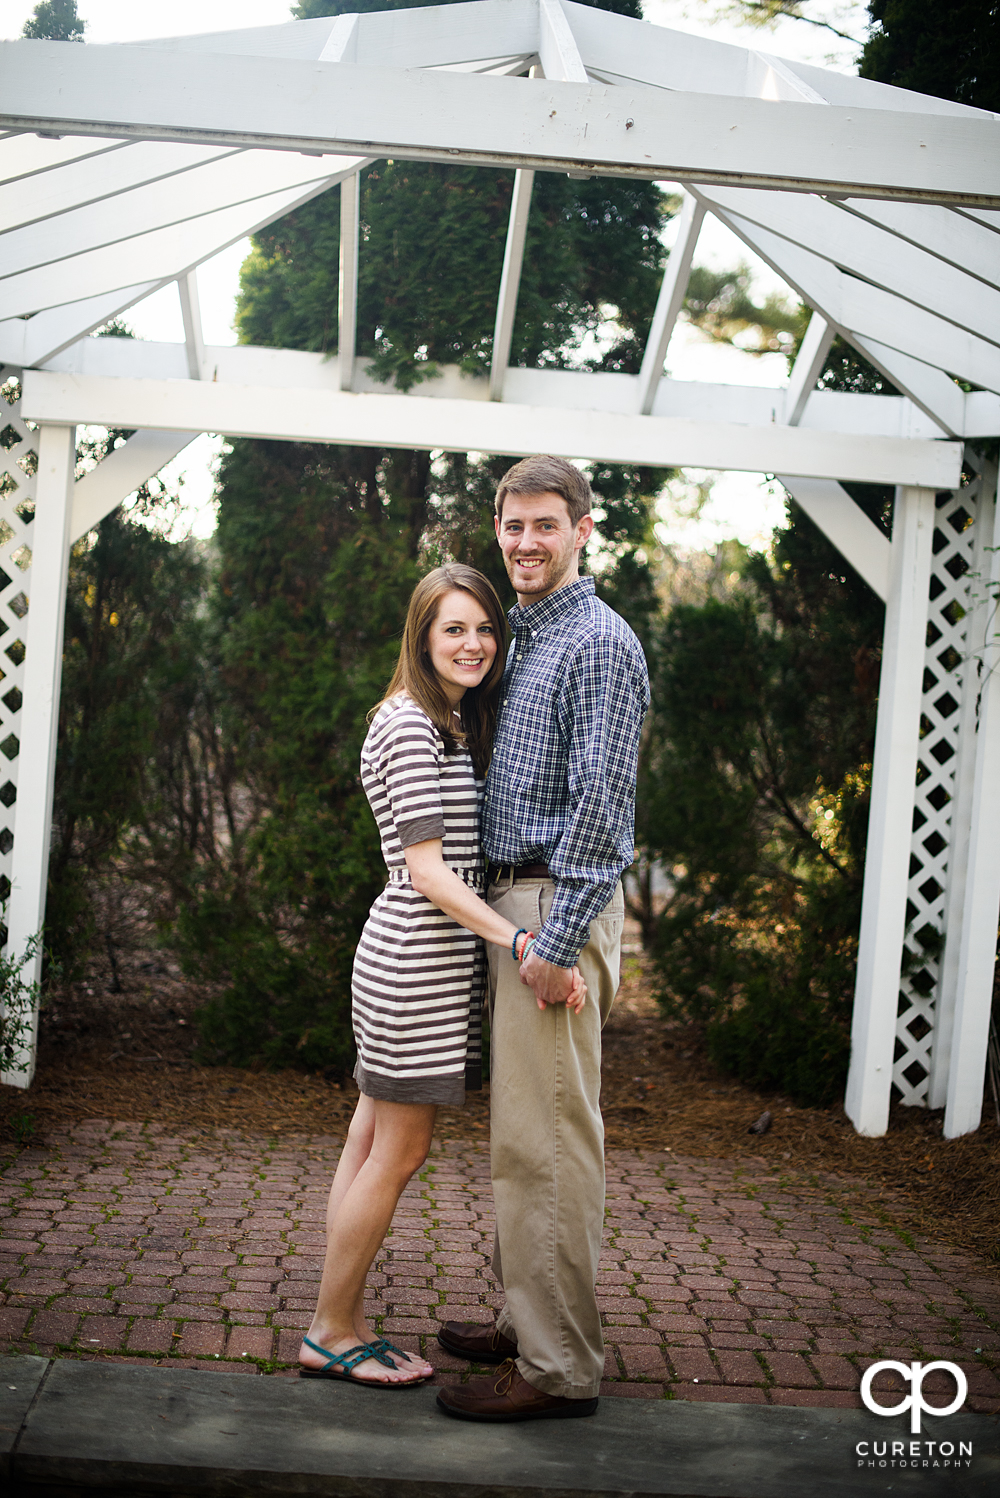 Future bride and groom smilin during an engagement session at the Botanical Gardens in Clemson.